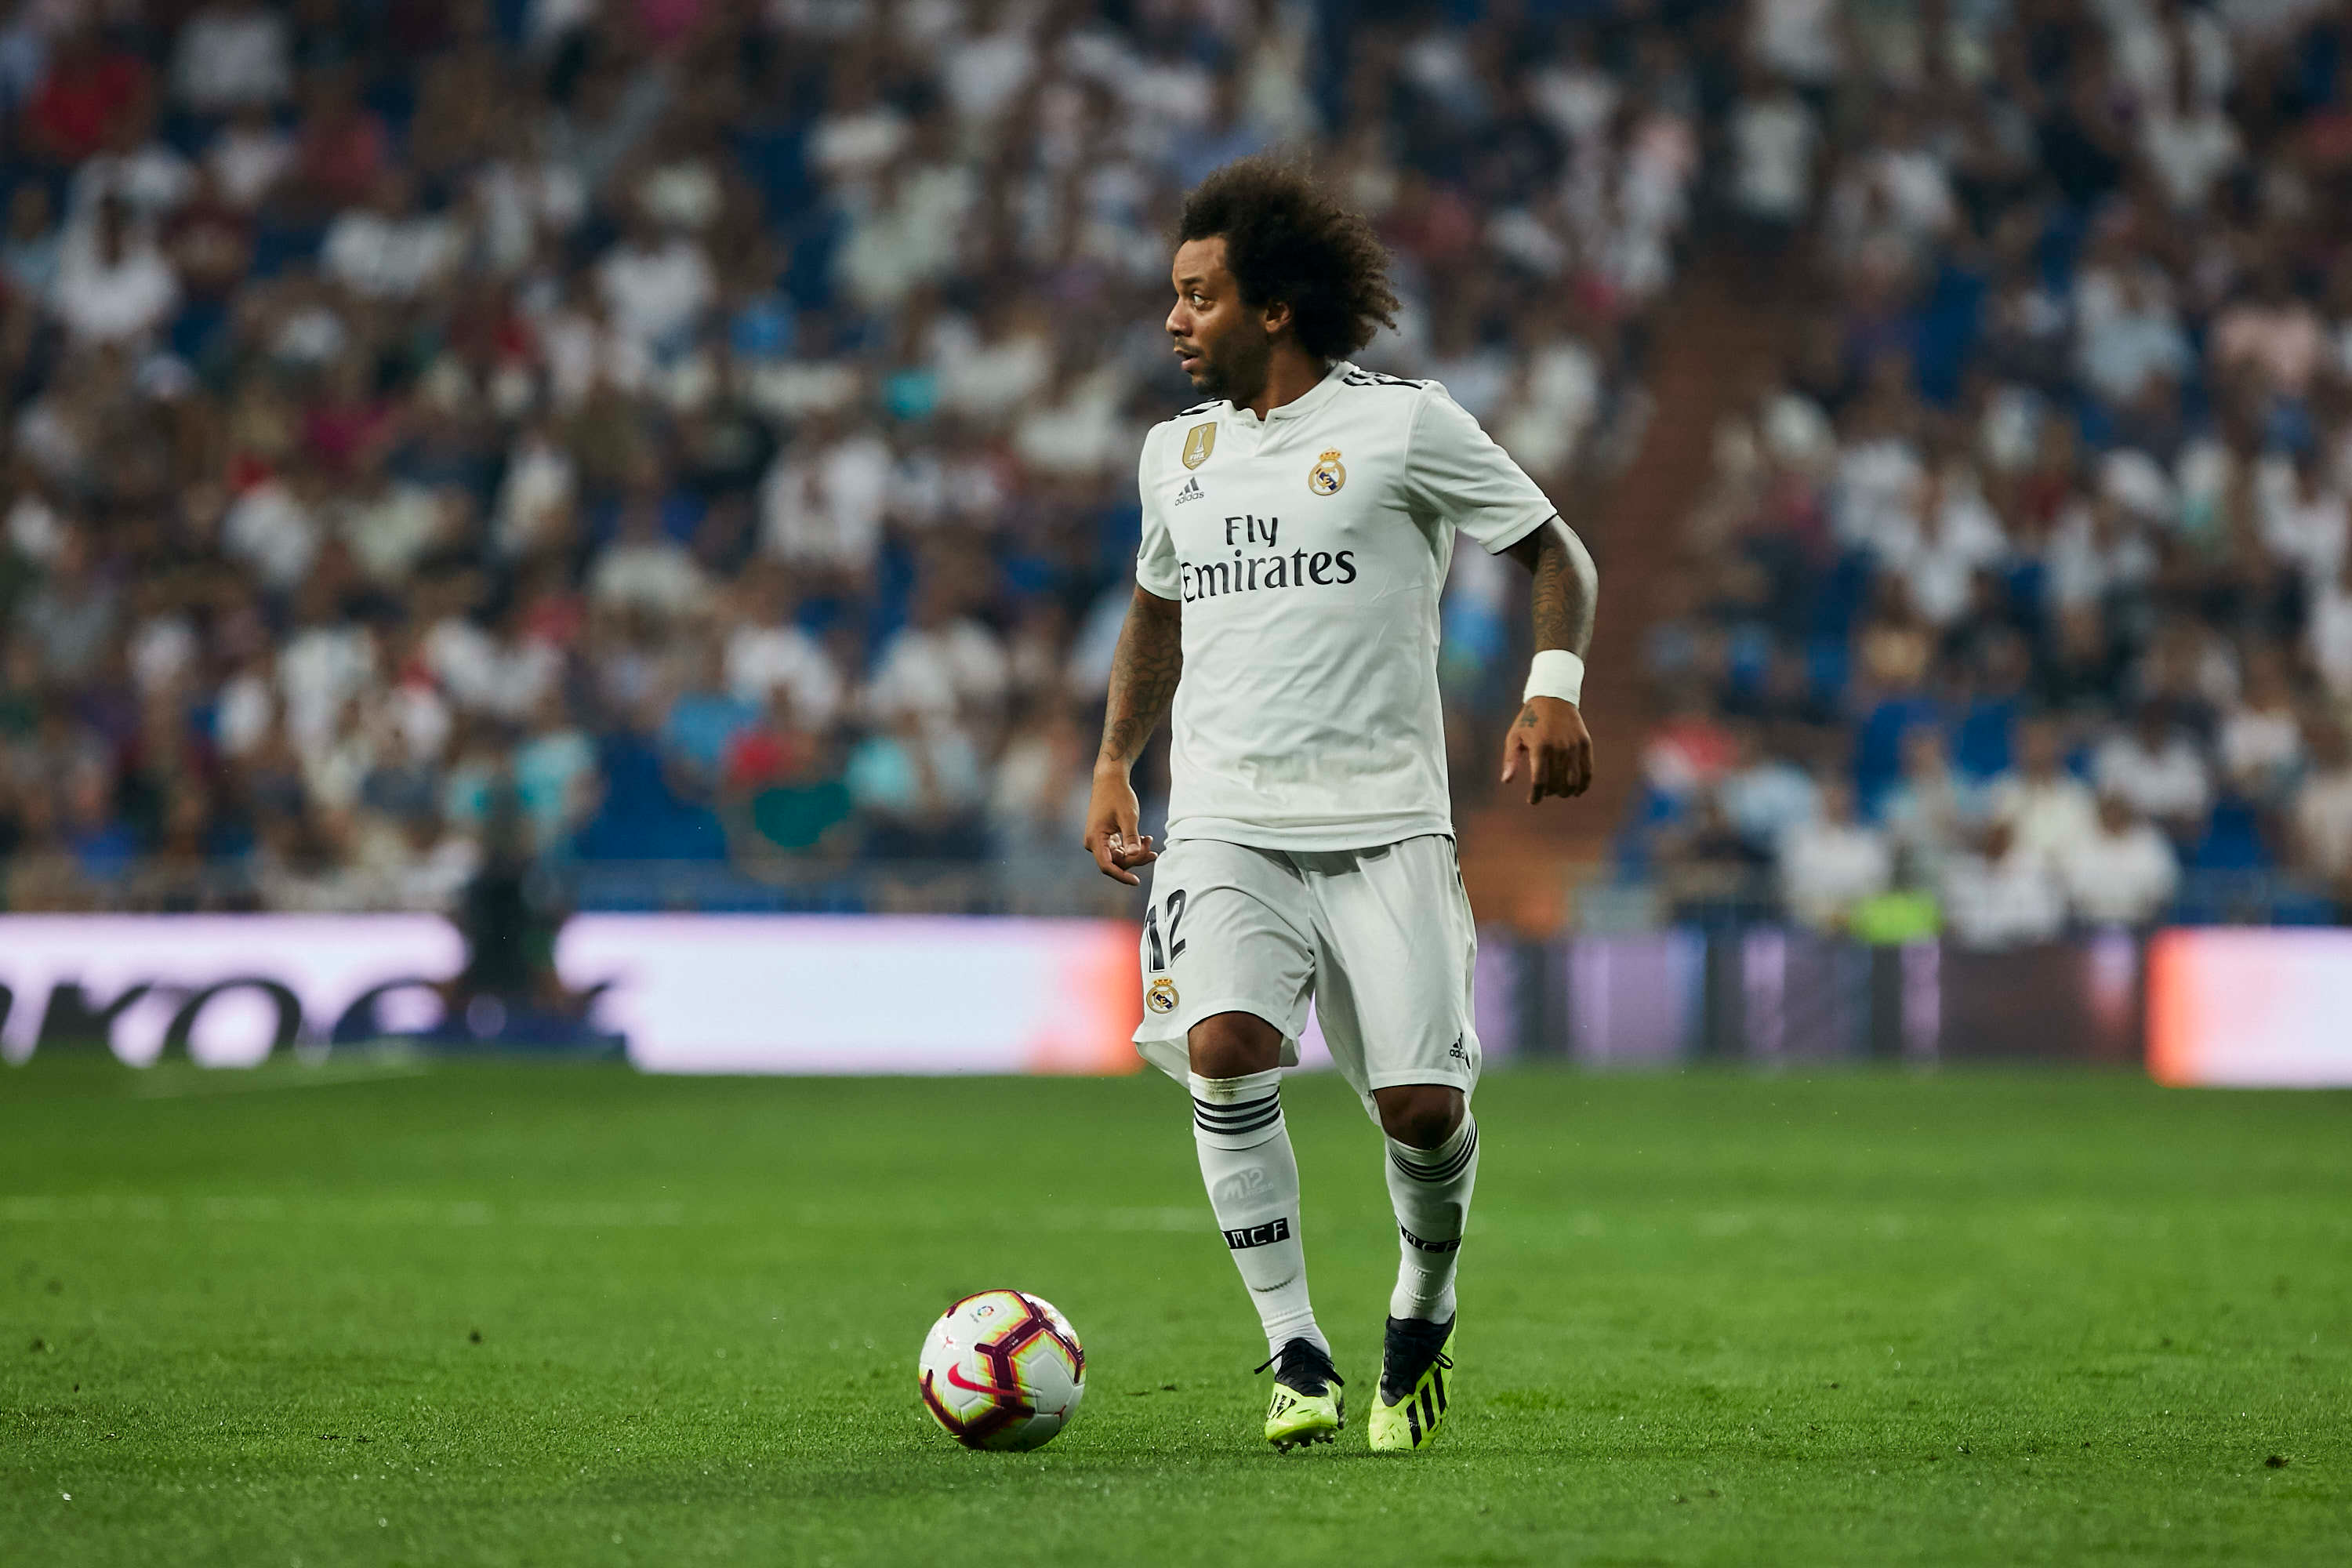 Potential Leak Reveals Five-Star Skillers In FIFA 19 Ahead Of Release